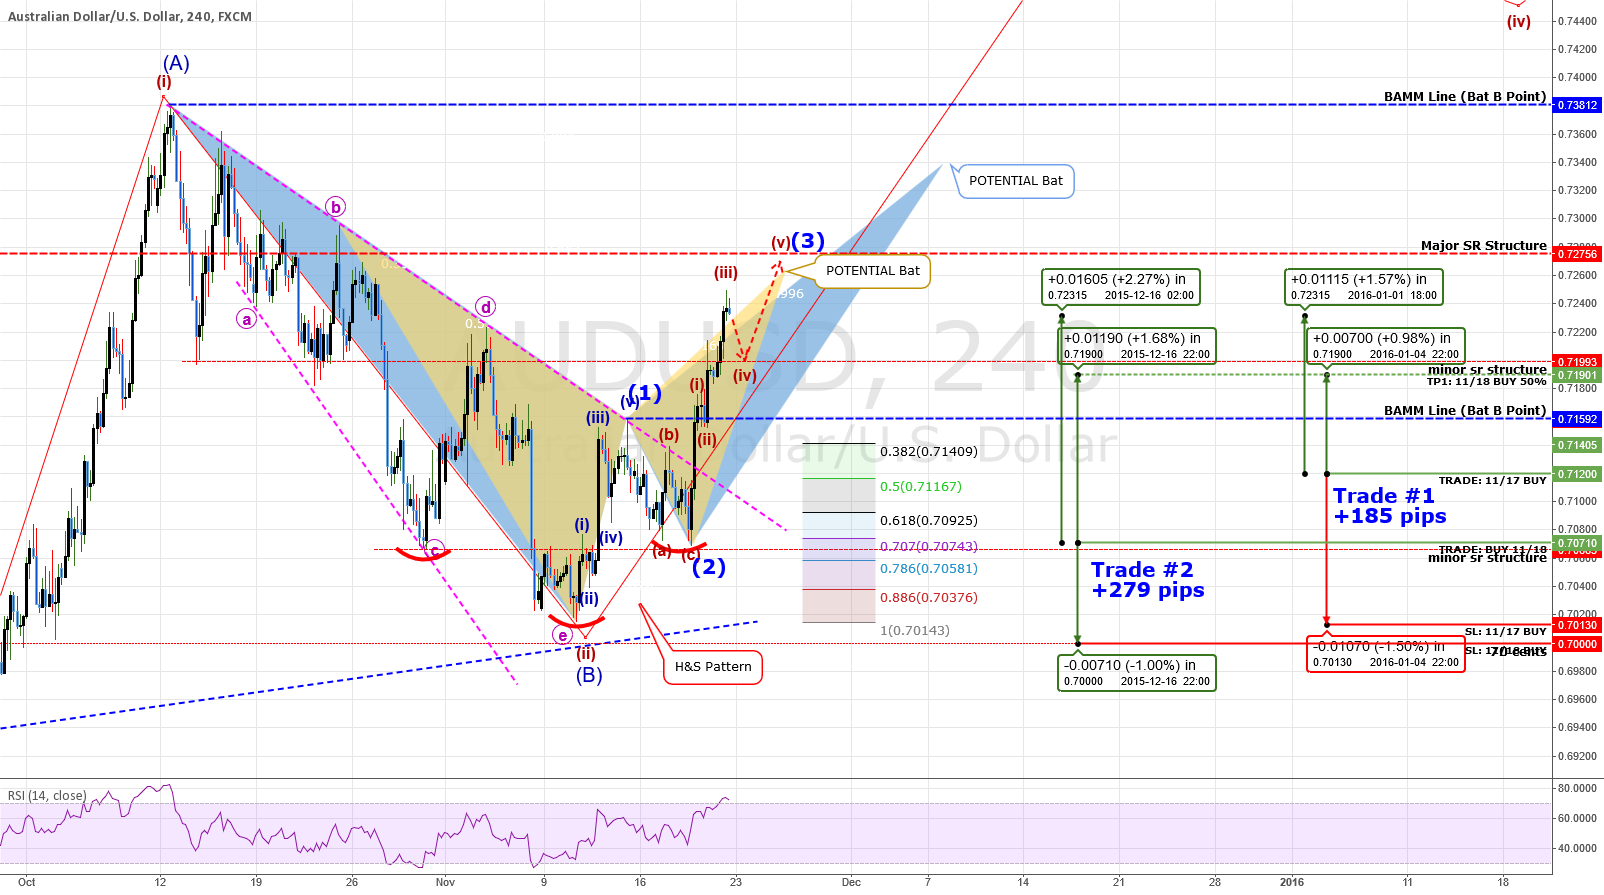 UPDATE #6: ANALYSIS: AUDUSD - MASSIVE Move Underway? +464 pips